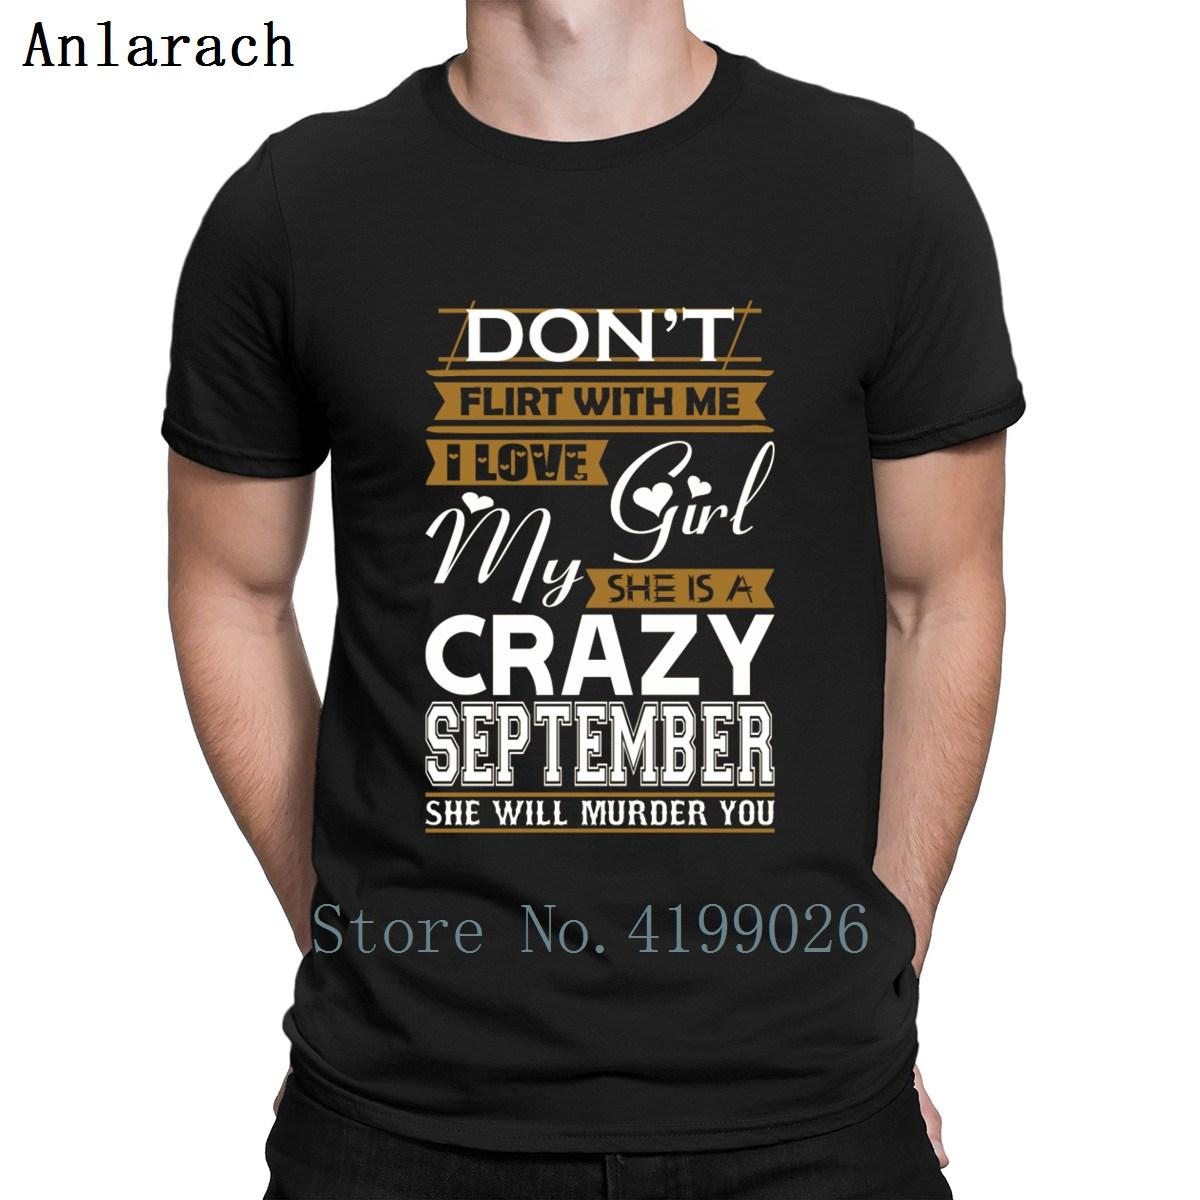 6b6aba51 Don't Flirt With Love My Girl She Crazy September Tshirt Trend Creative  Funny Tshirt For Men 2018 Family Big Sizes Top Quality